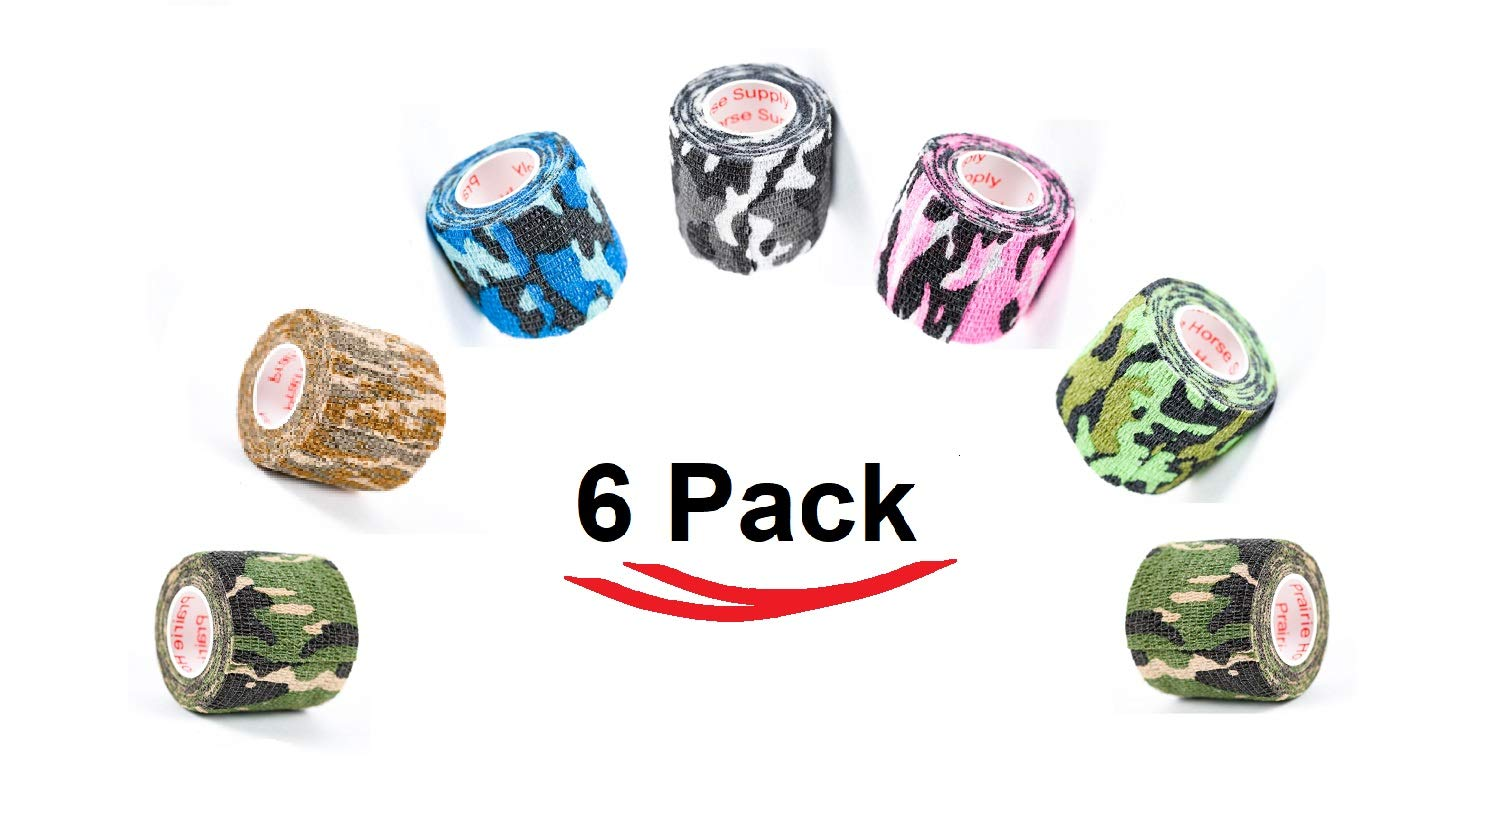 Prairie Horse Supply Vet Wrap Tape Bulk (Assorted Camo Colors) (6 Pack) (2 Inches x 15 Feet) Vet Rap Medical First Aid Tape Self Adhesive Adherent for Ankle Wrist Sprains and Swelling by Prairie Horse Supply